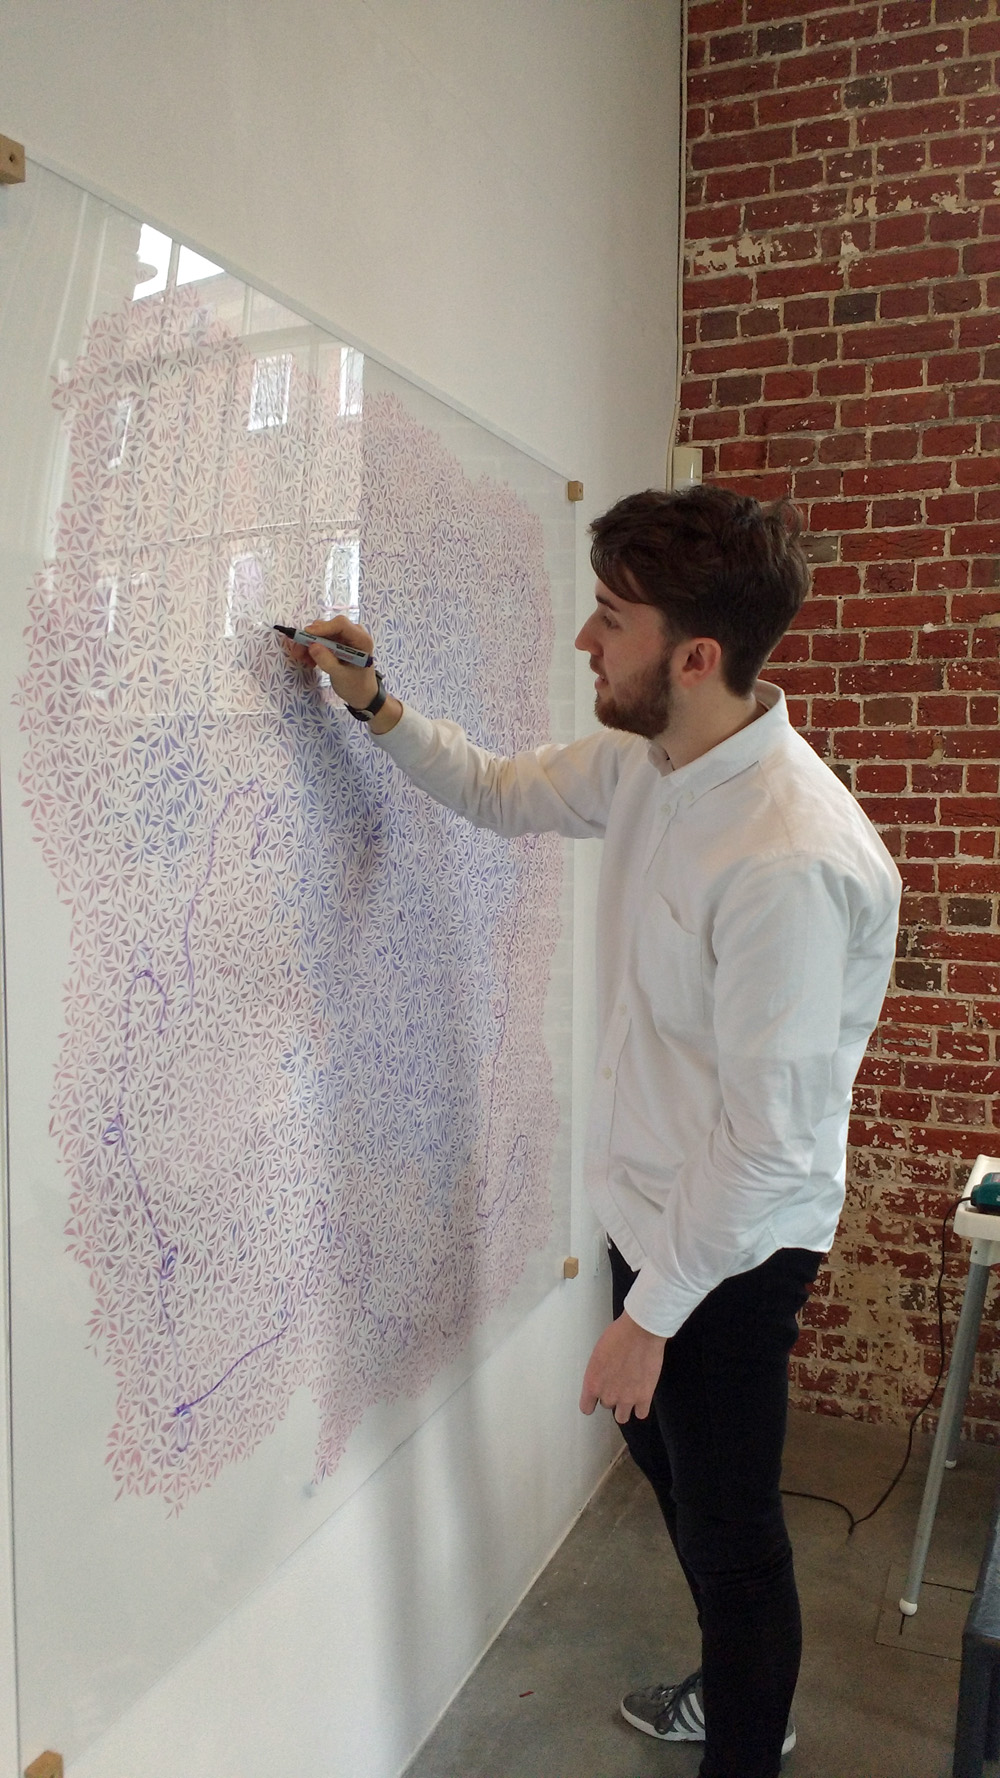 A person in a white shirt drawing over a very large pink and purple ink pattern behind a perspex sheet, with a purple dry-wipe marker pen.